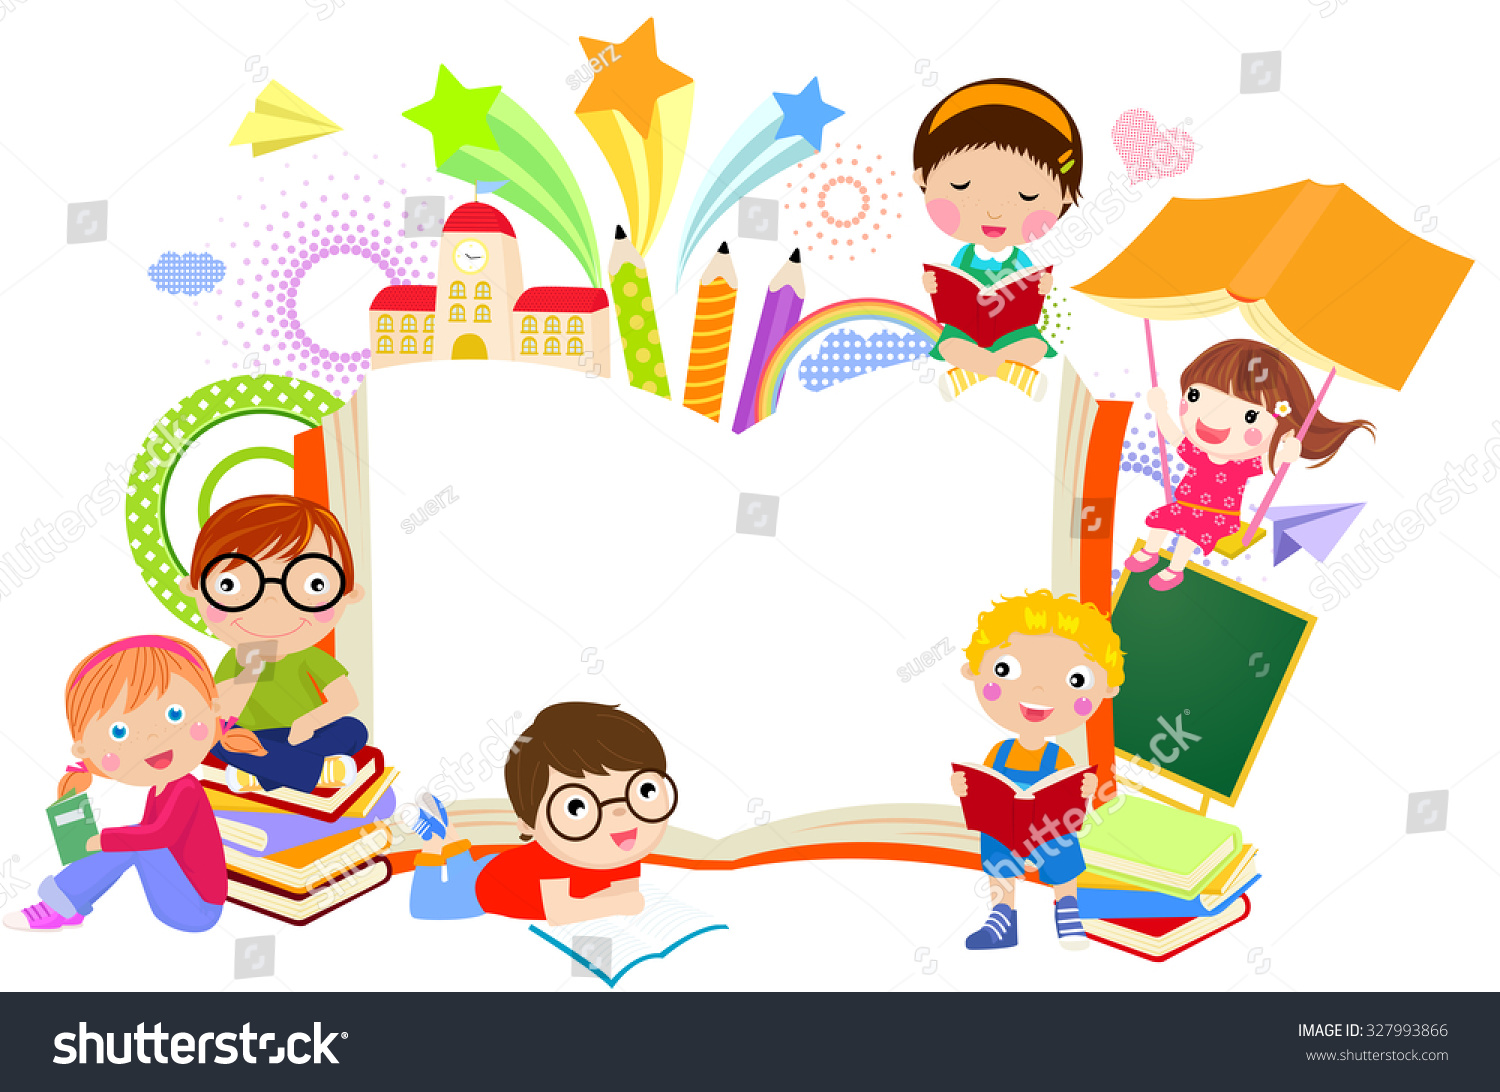 Children S Book Cover Wall Art ~ Kids and book frame stock vector shutterstock